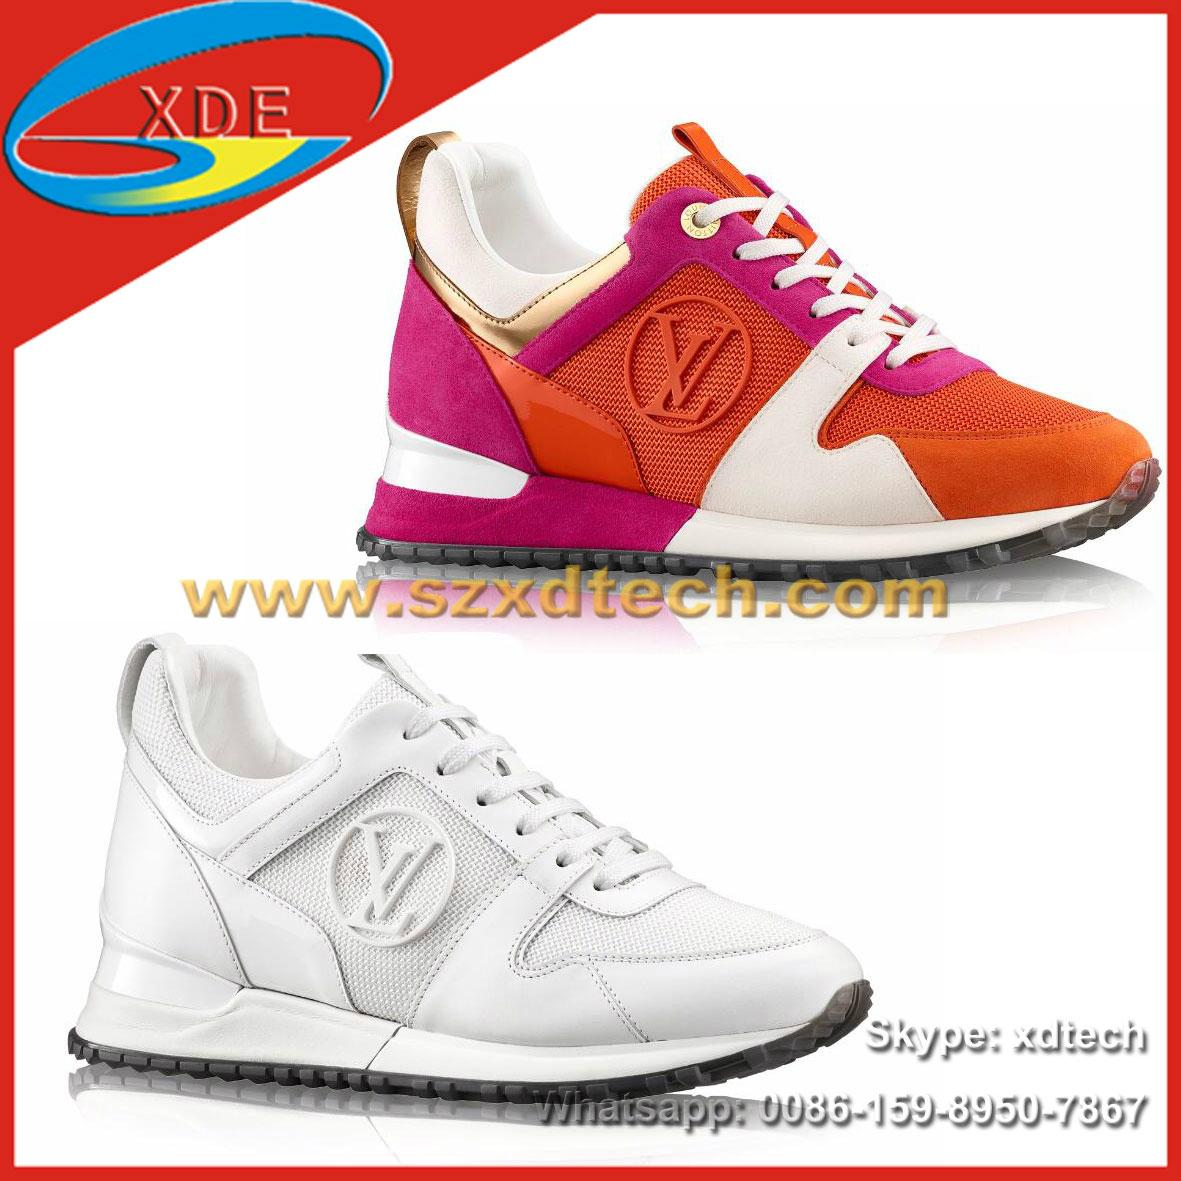 87e53920e0c9 Louis Vuitton RUN AWAY SNEAKER Running Shoes LV Sports Shoes LV Sneakers 1  ...